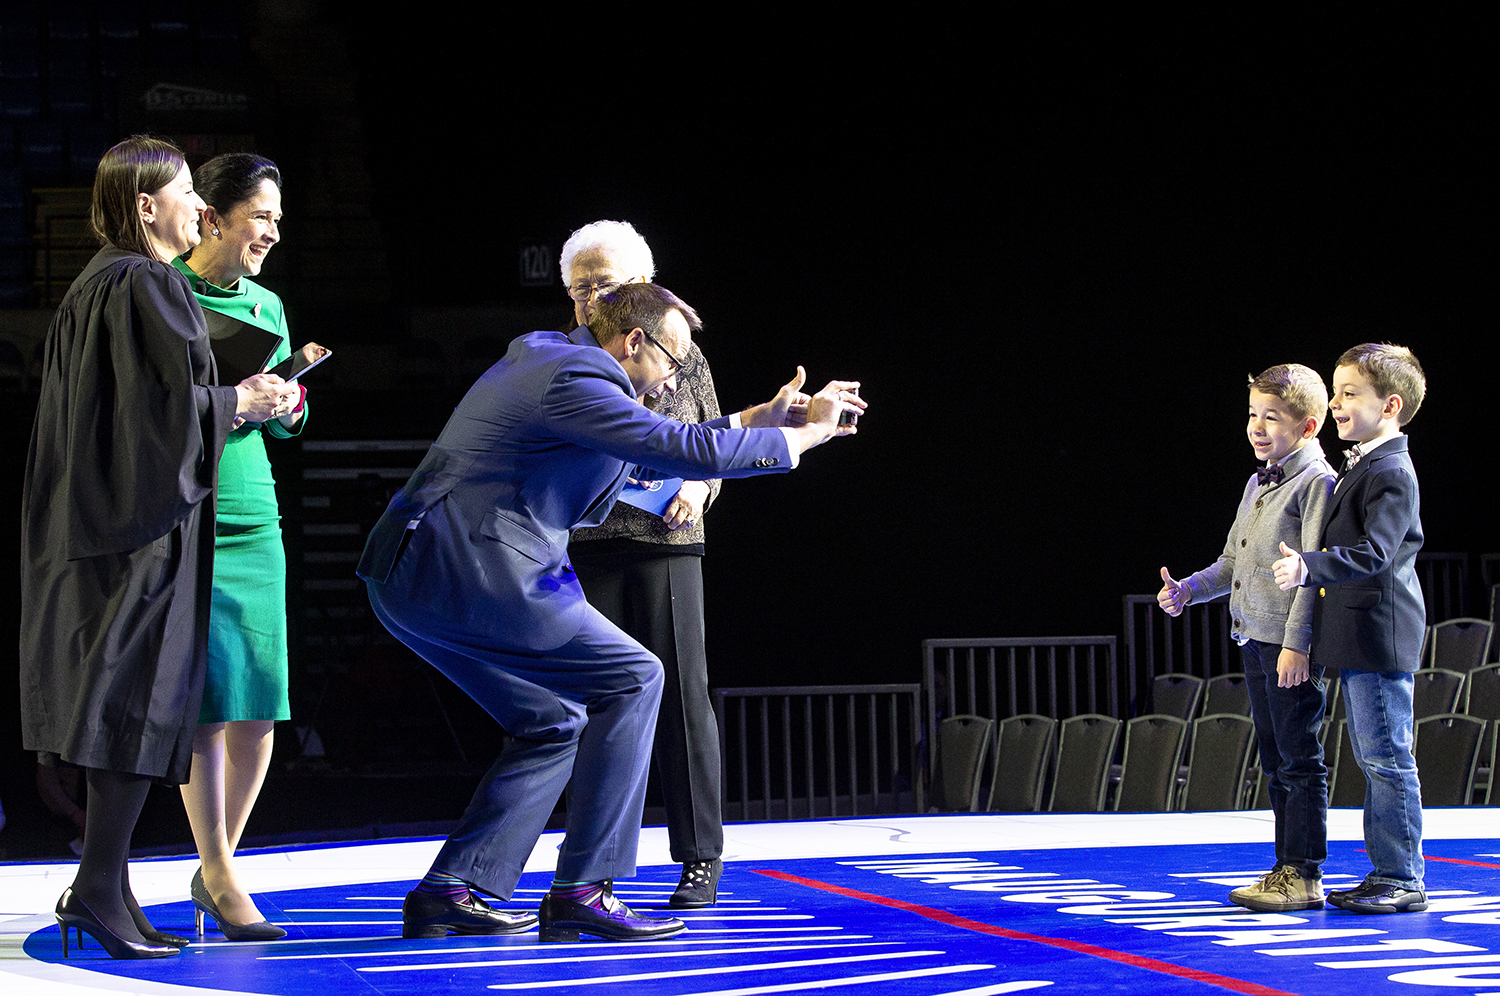 Judge Rosanna Fernandez, left, and Comptroller Susana Mendoza watch while Mendoza's husband, David Szostak, snaps a picture of their son, David and Fernandaz's son, Lucas, after the Illinois Inaugural Ceremony had ended Monday, Jan. 14, 2019 a the Bank of Springfield Center in Springfield, Ill. [Rich Saal/The State Journal-Register]